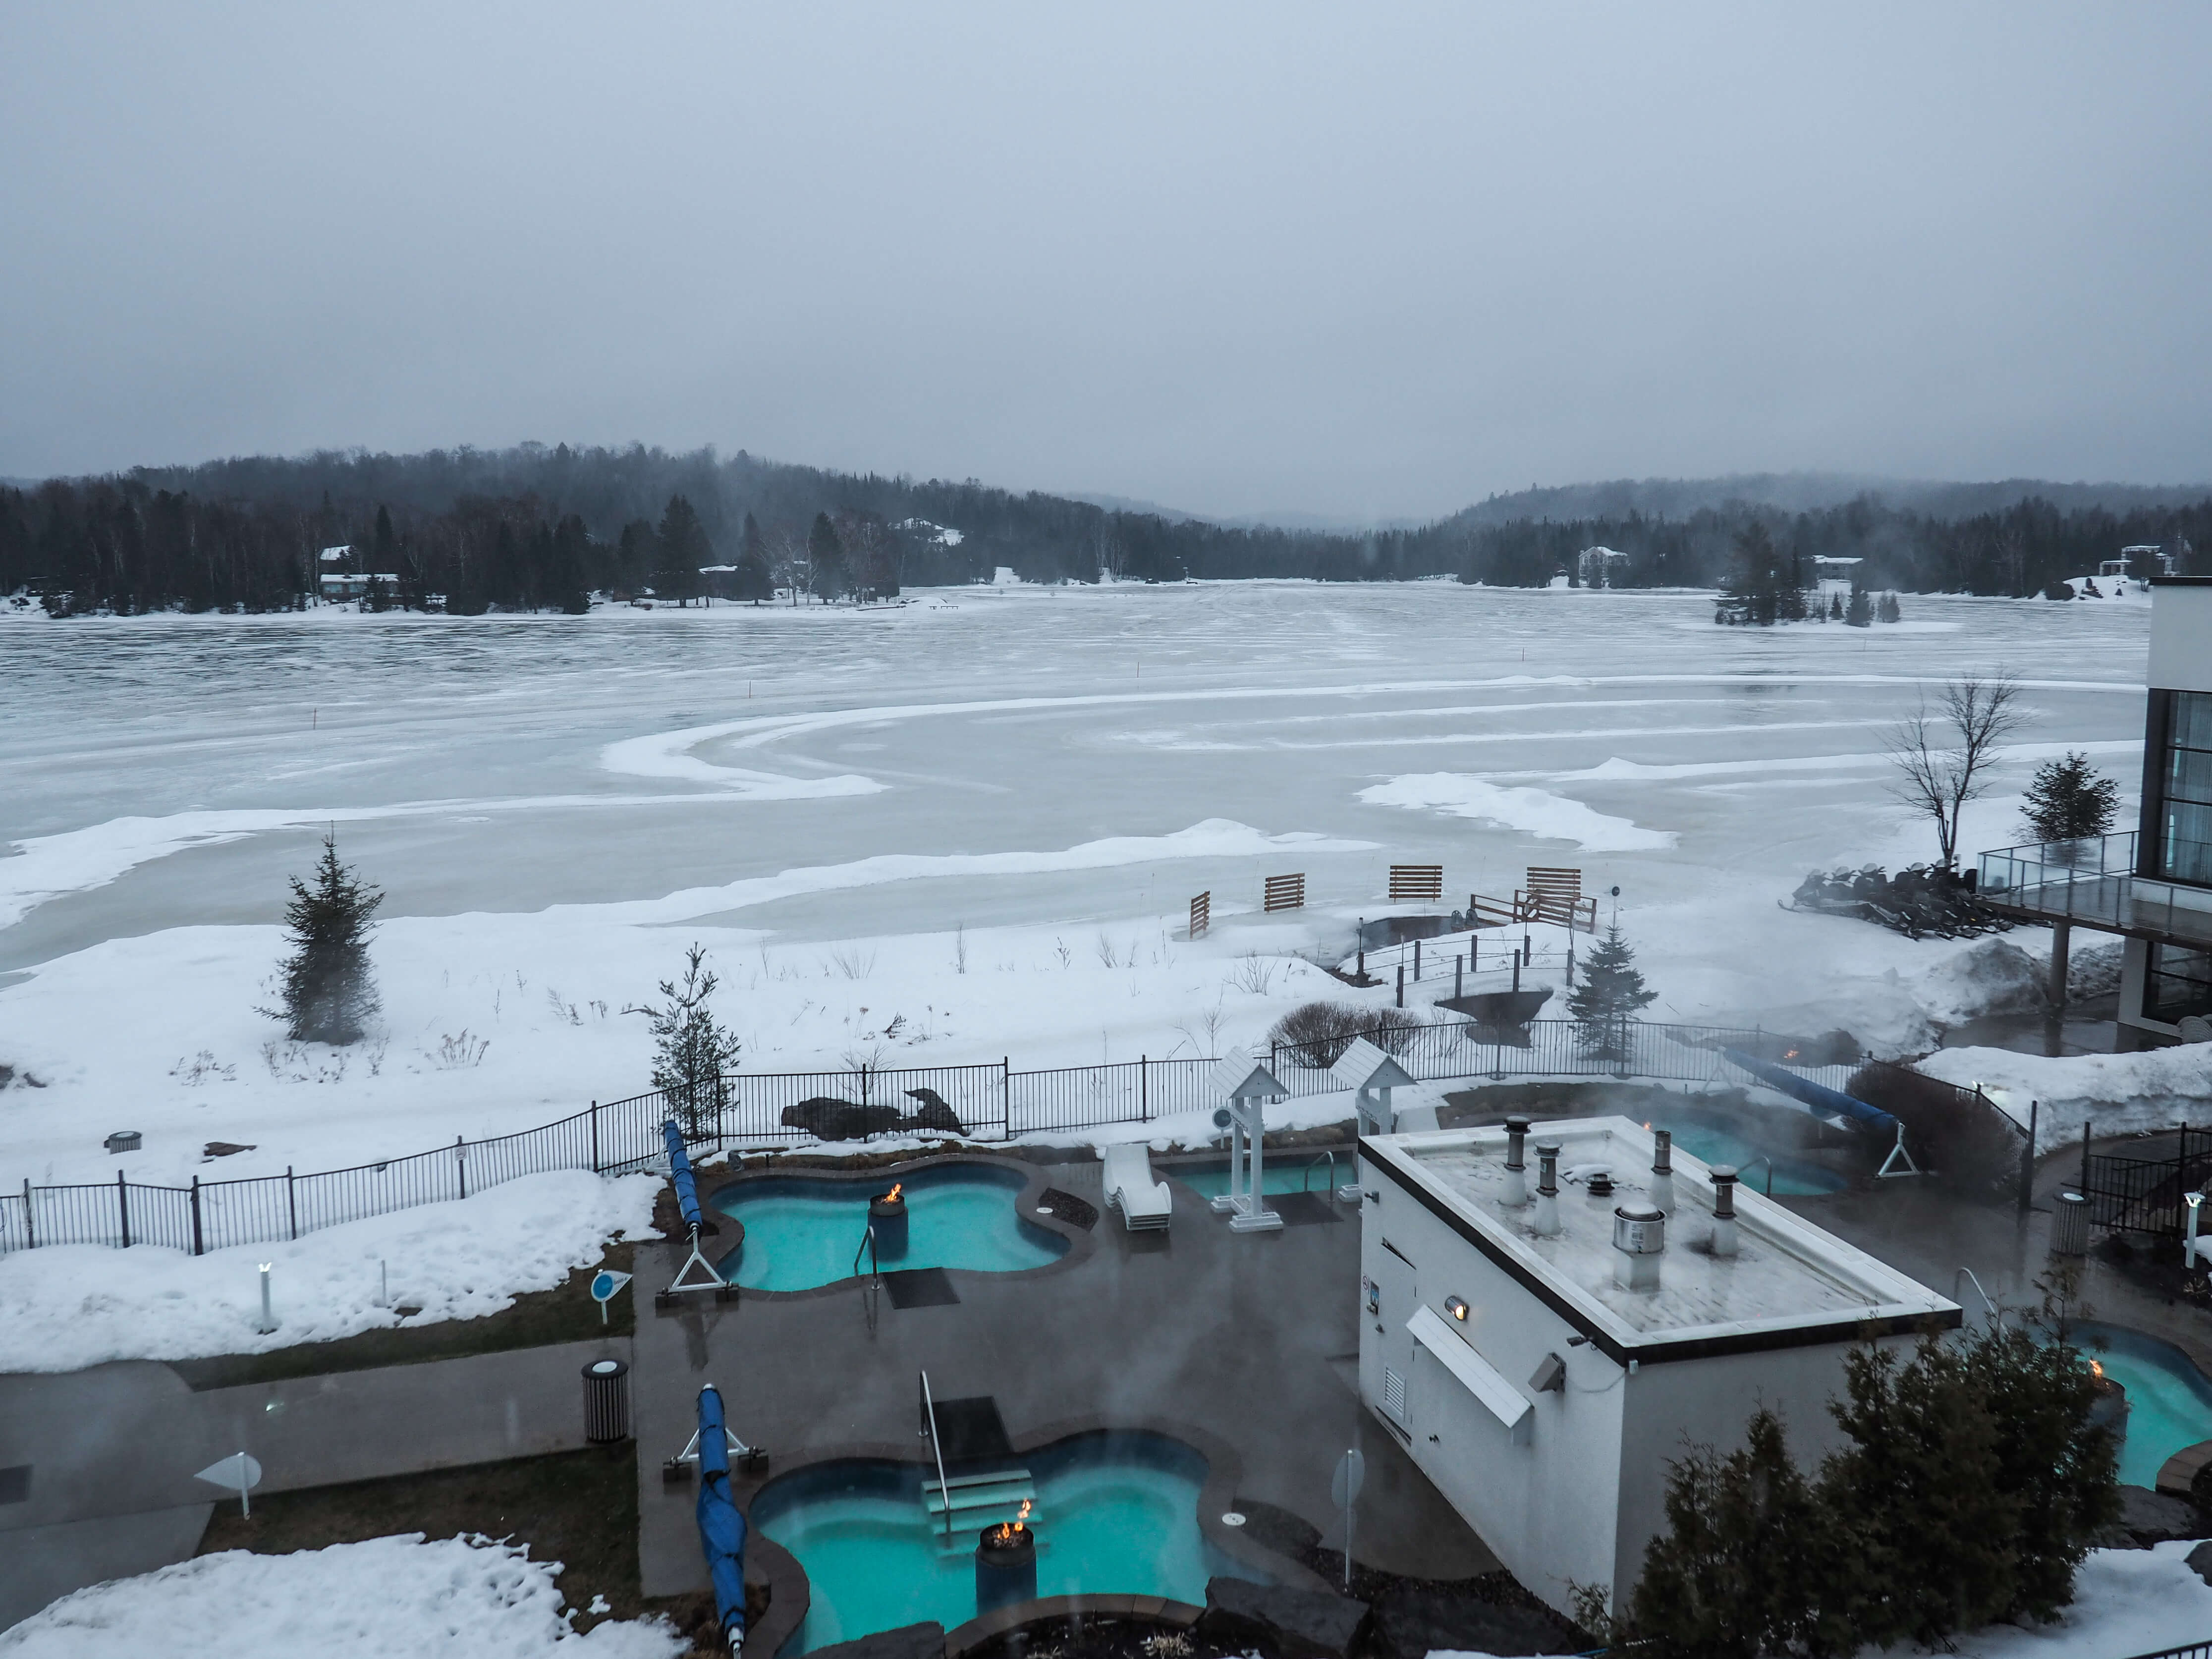 The Esterel Resort Quebec